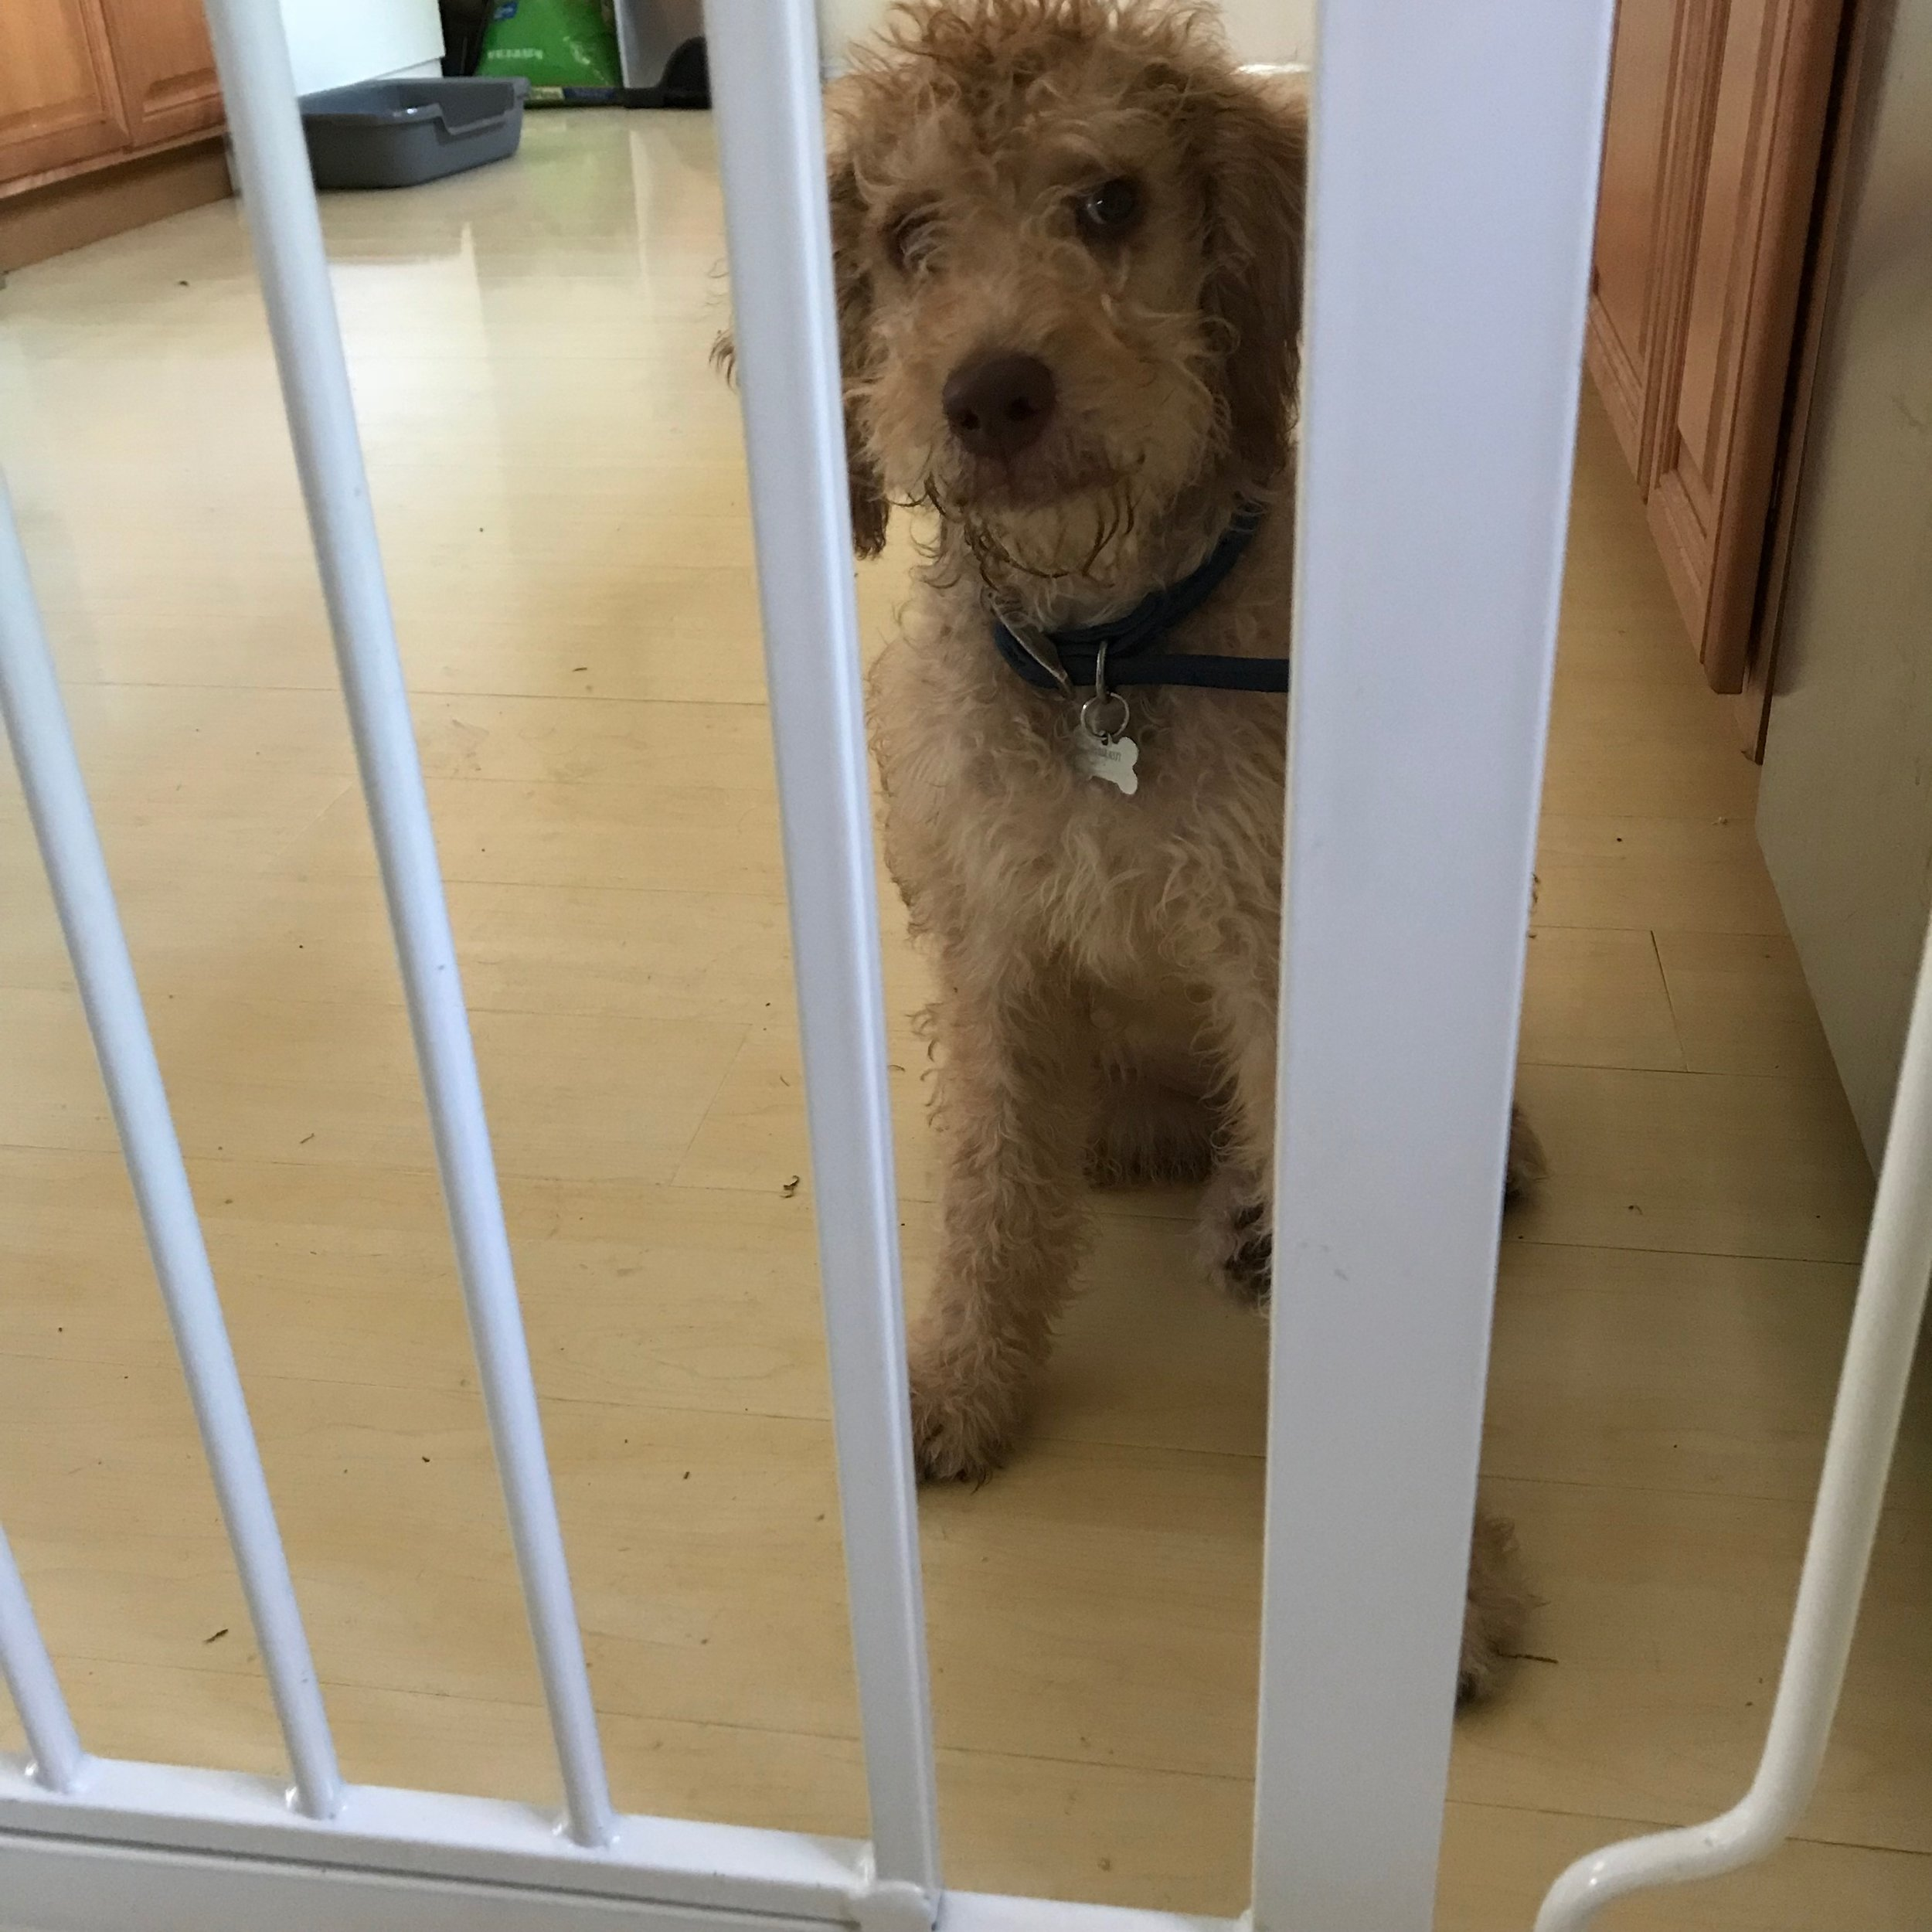 Step 1: To start the calming process, put a dog or puppy behind a gate and remain nearby, standing on the other side of the gate, but withdrawing all engagement like eye contact, petting, and talking.